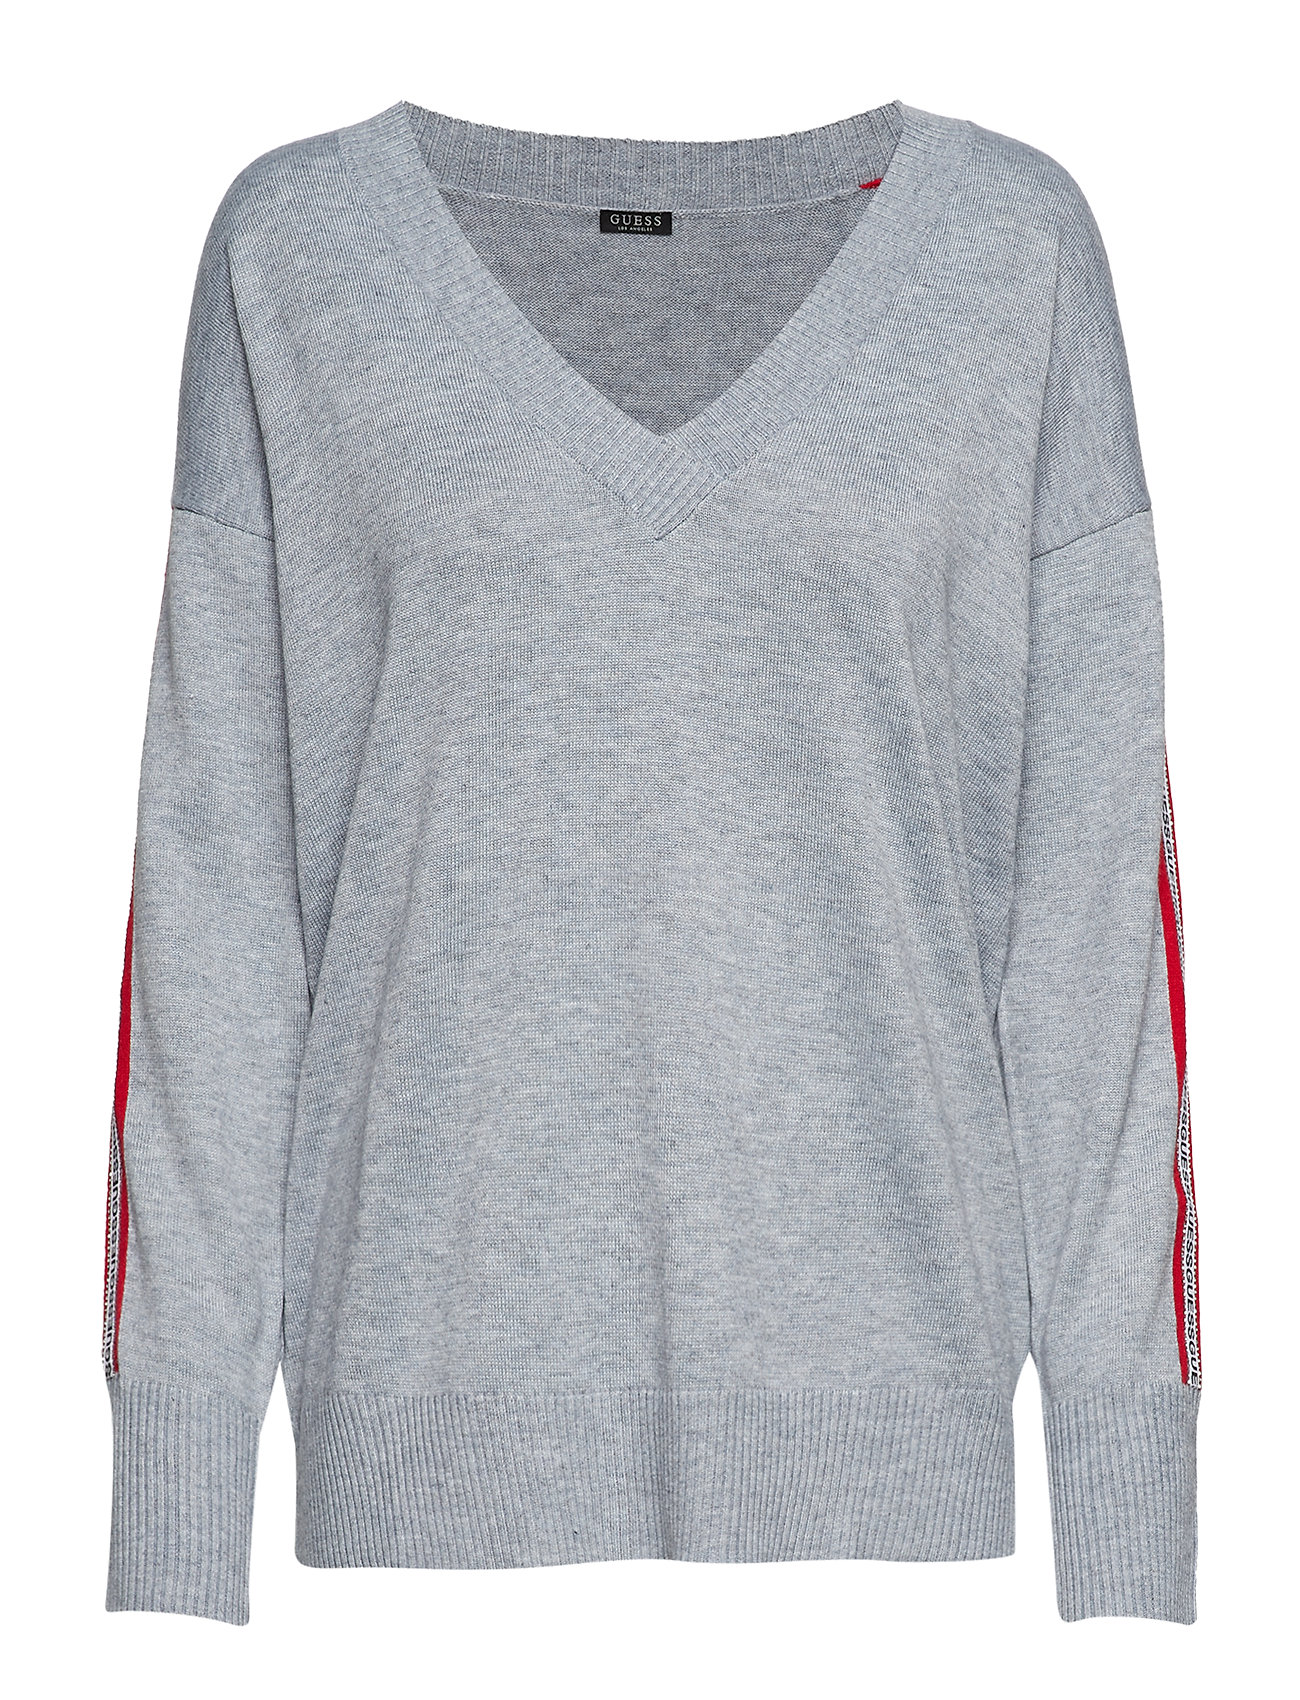 GUESS Jeans LS VN JULIE SWEATER - STONE HEATHER GRE